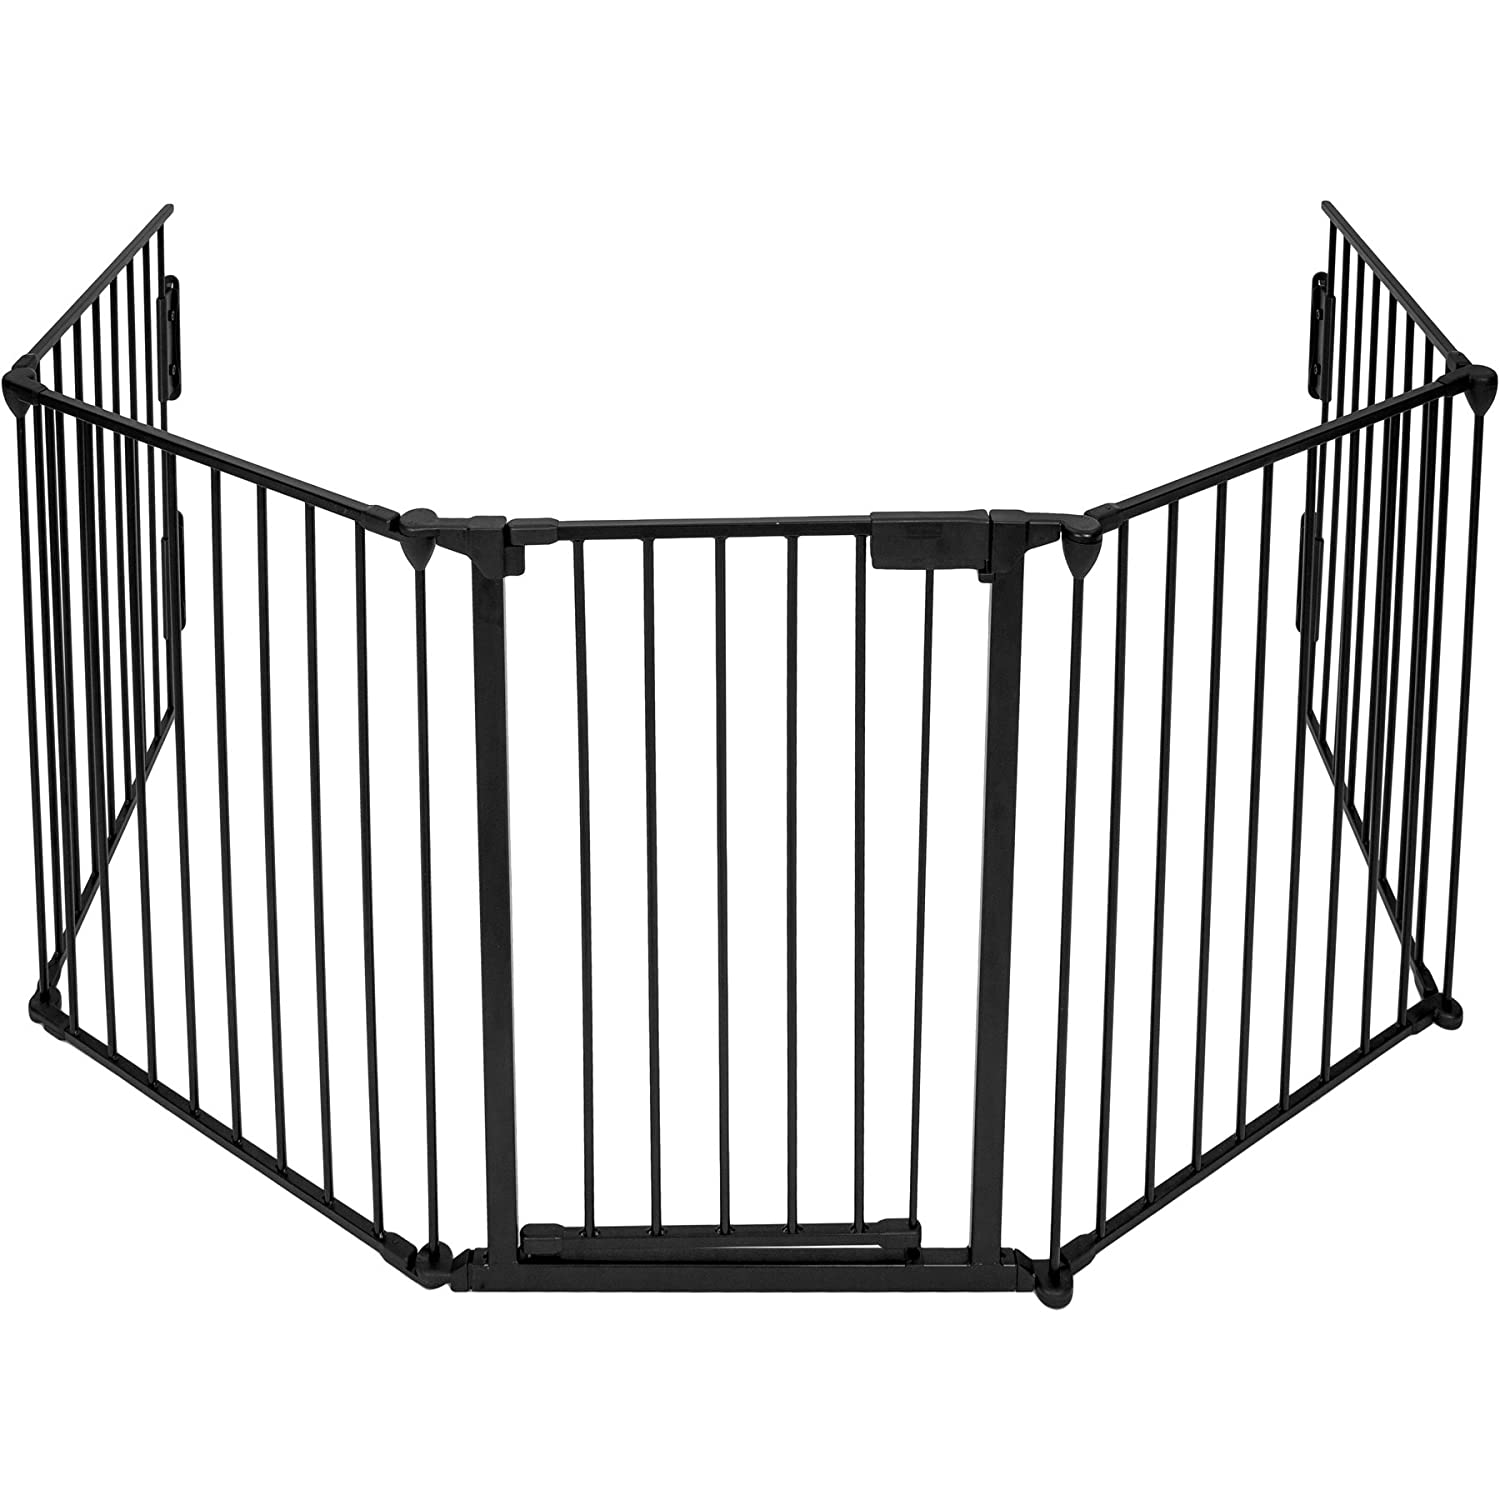 TecTake Premium Hearth Gate Fire Guard Black 300cm 400754